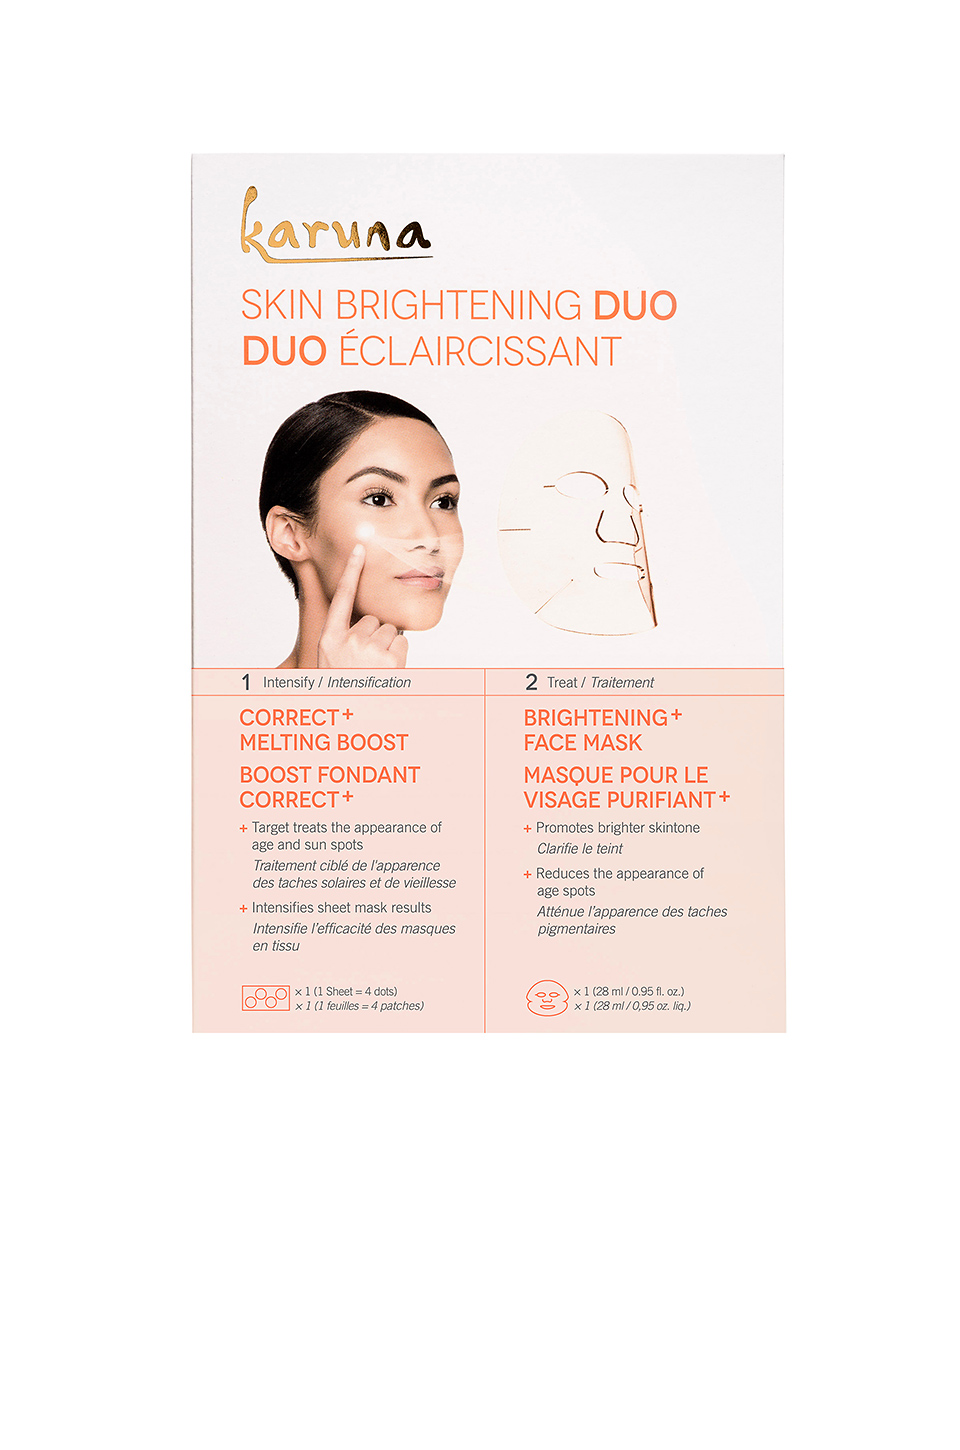 Karuna Skin Brightening Duo in